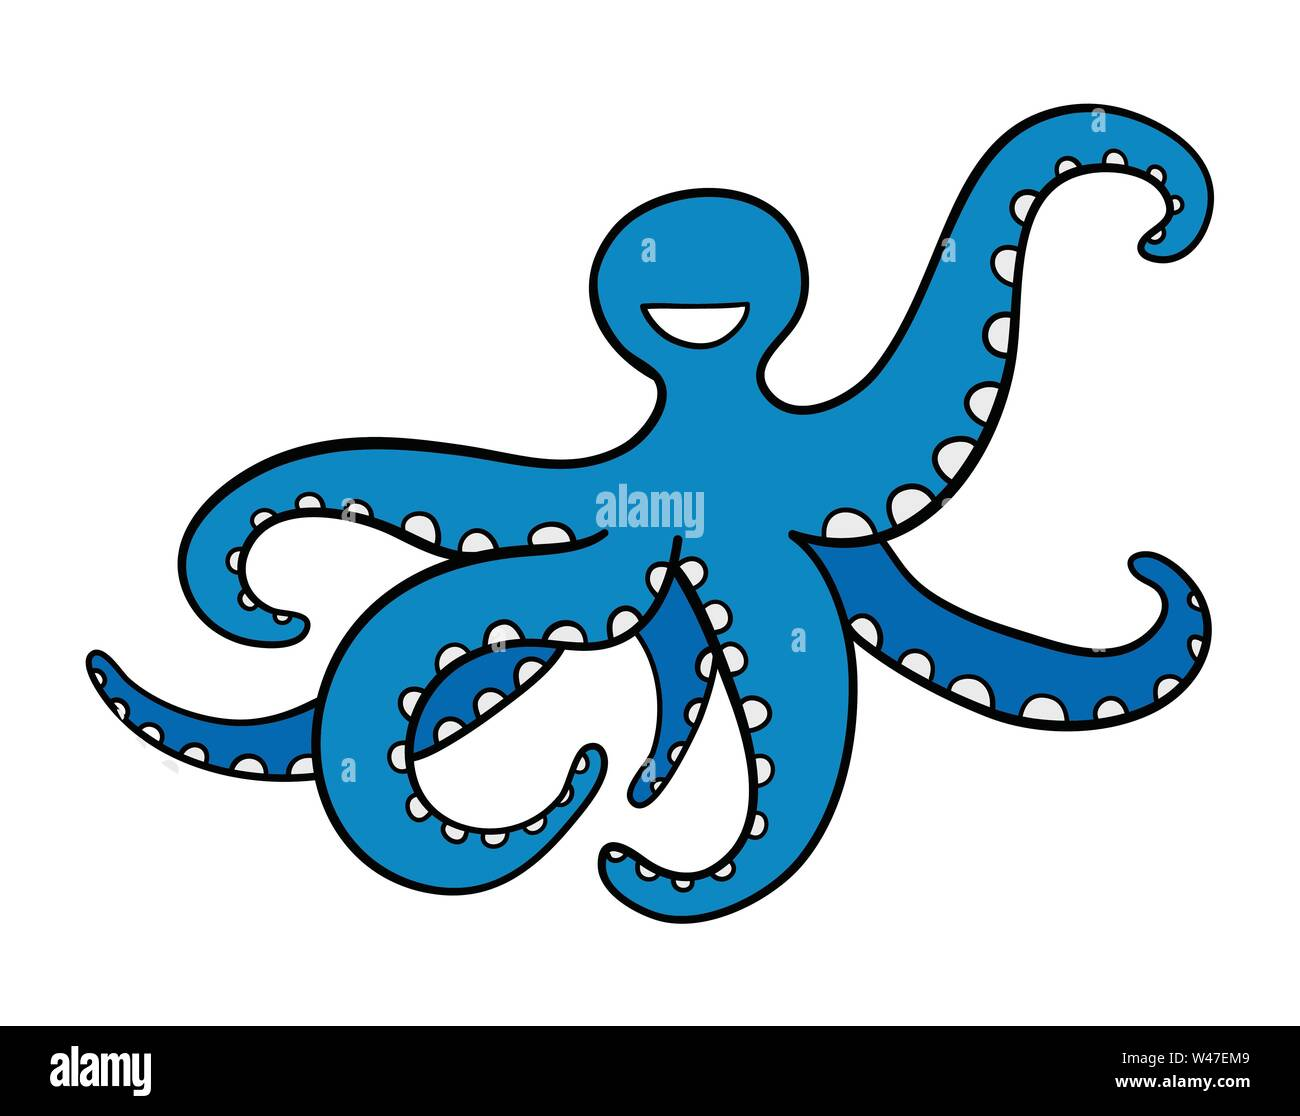 Vector hand-drawn illustration of blue octopus. Black outlines and colored. - Stock Image